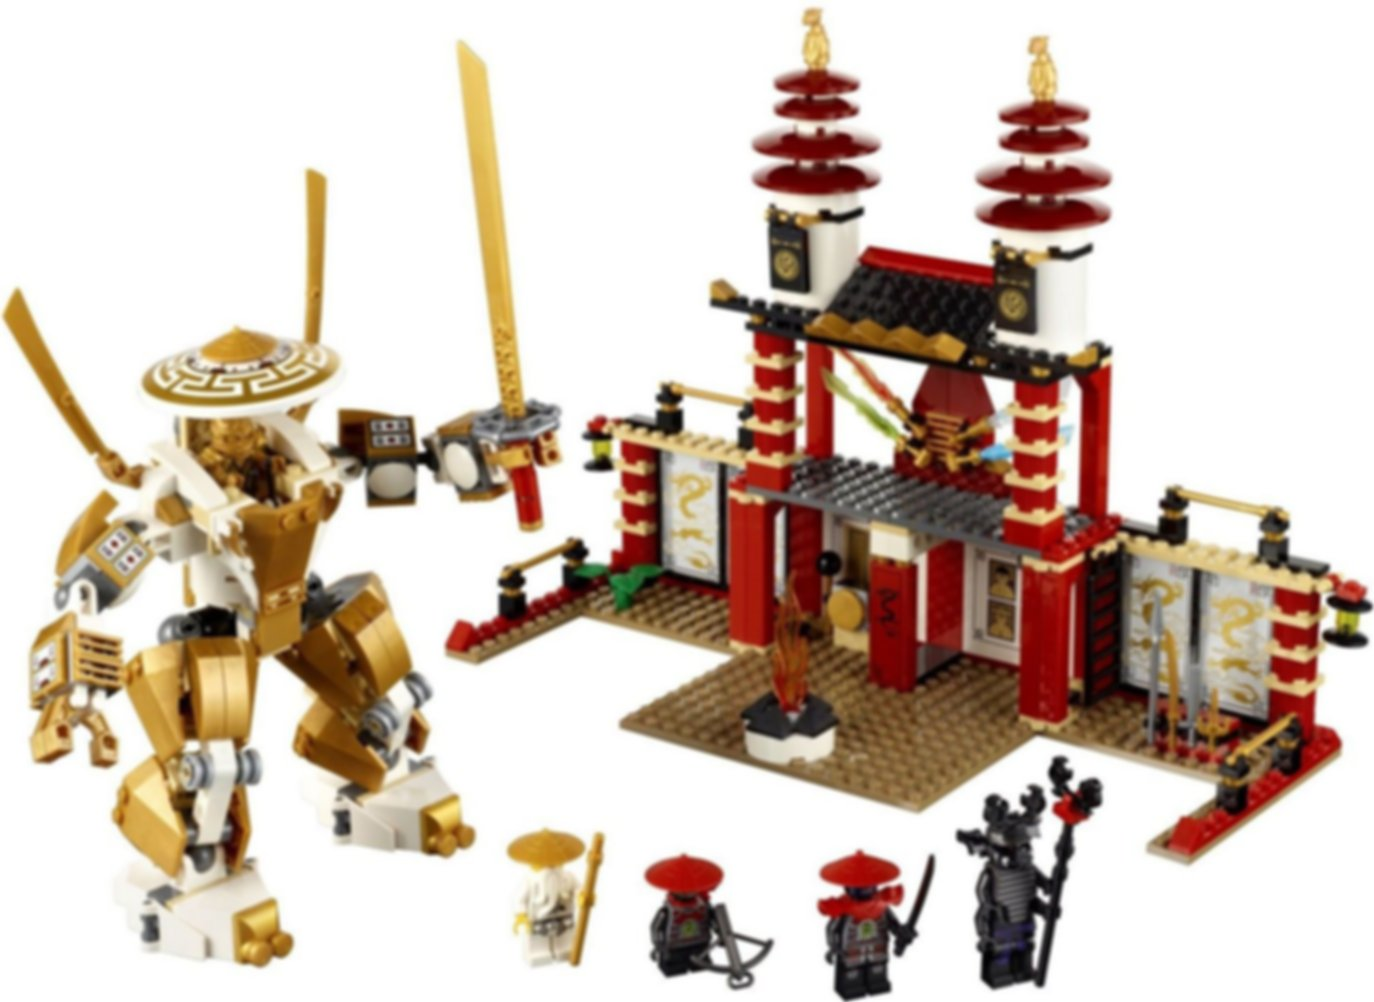 Temple of Light components